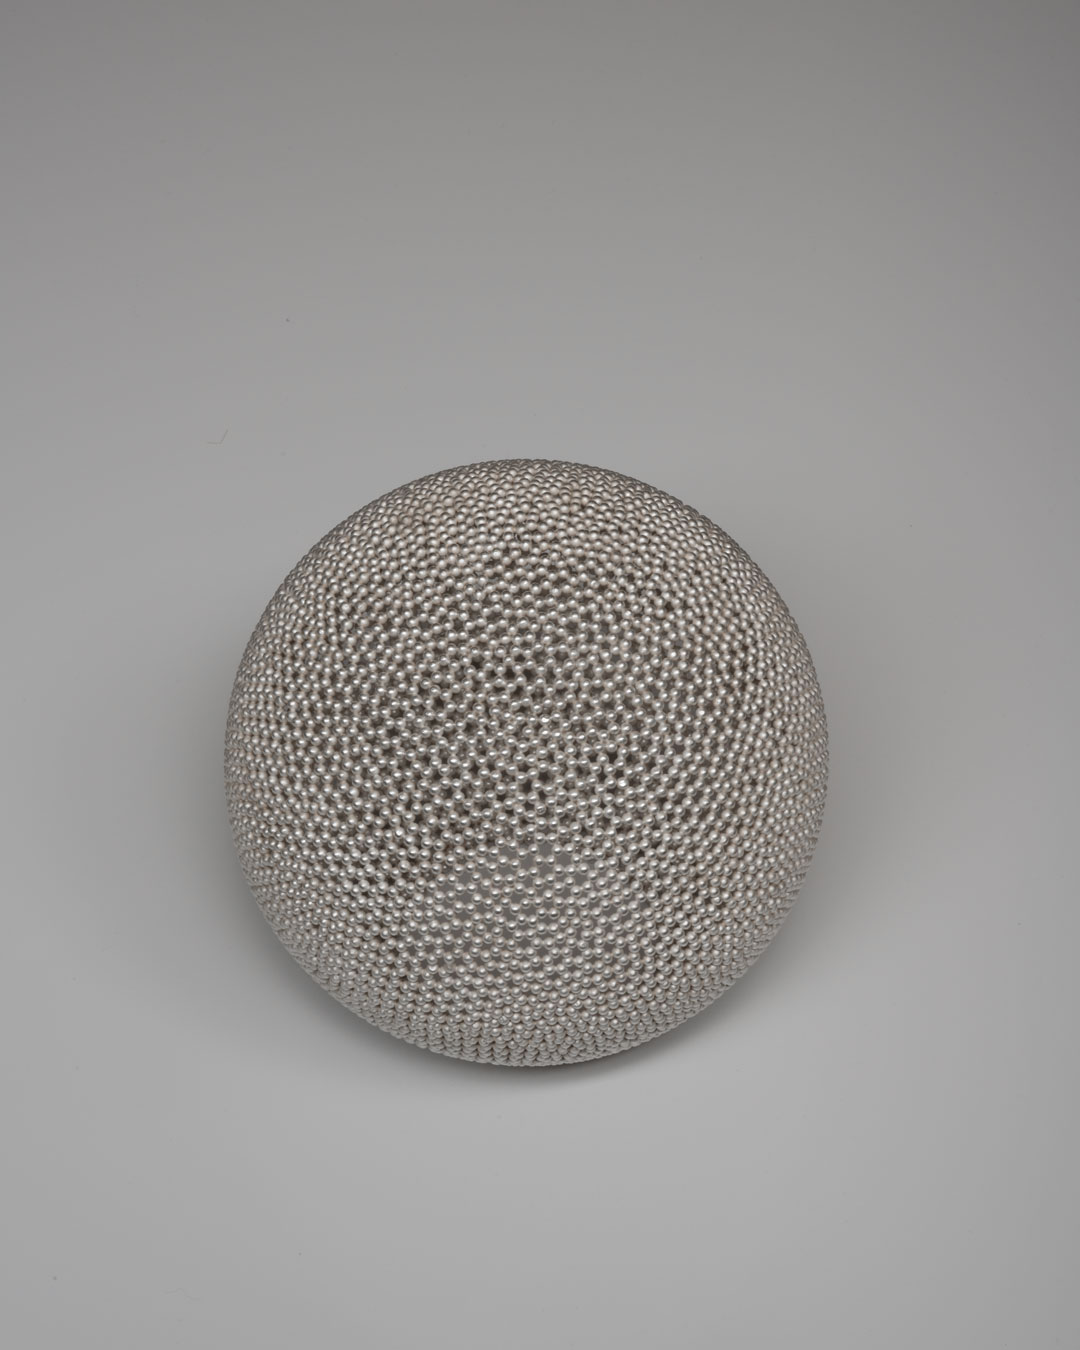 David Huycke, Pearl Bol, 2003, object; silver, 170 x 160 mm, €4500 (image 1 of 2)